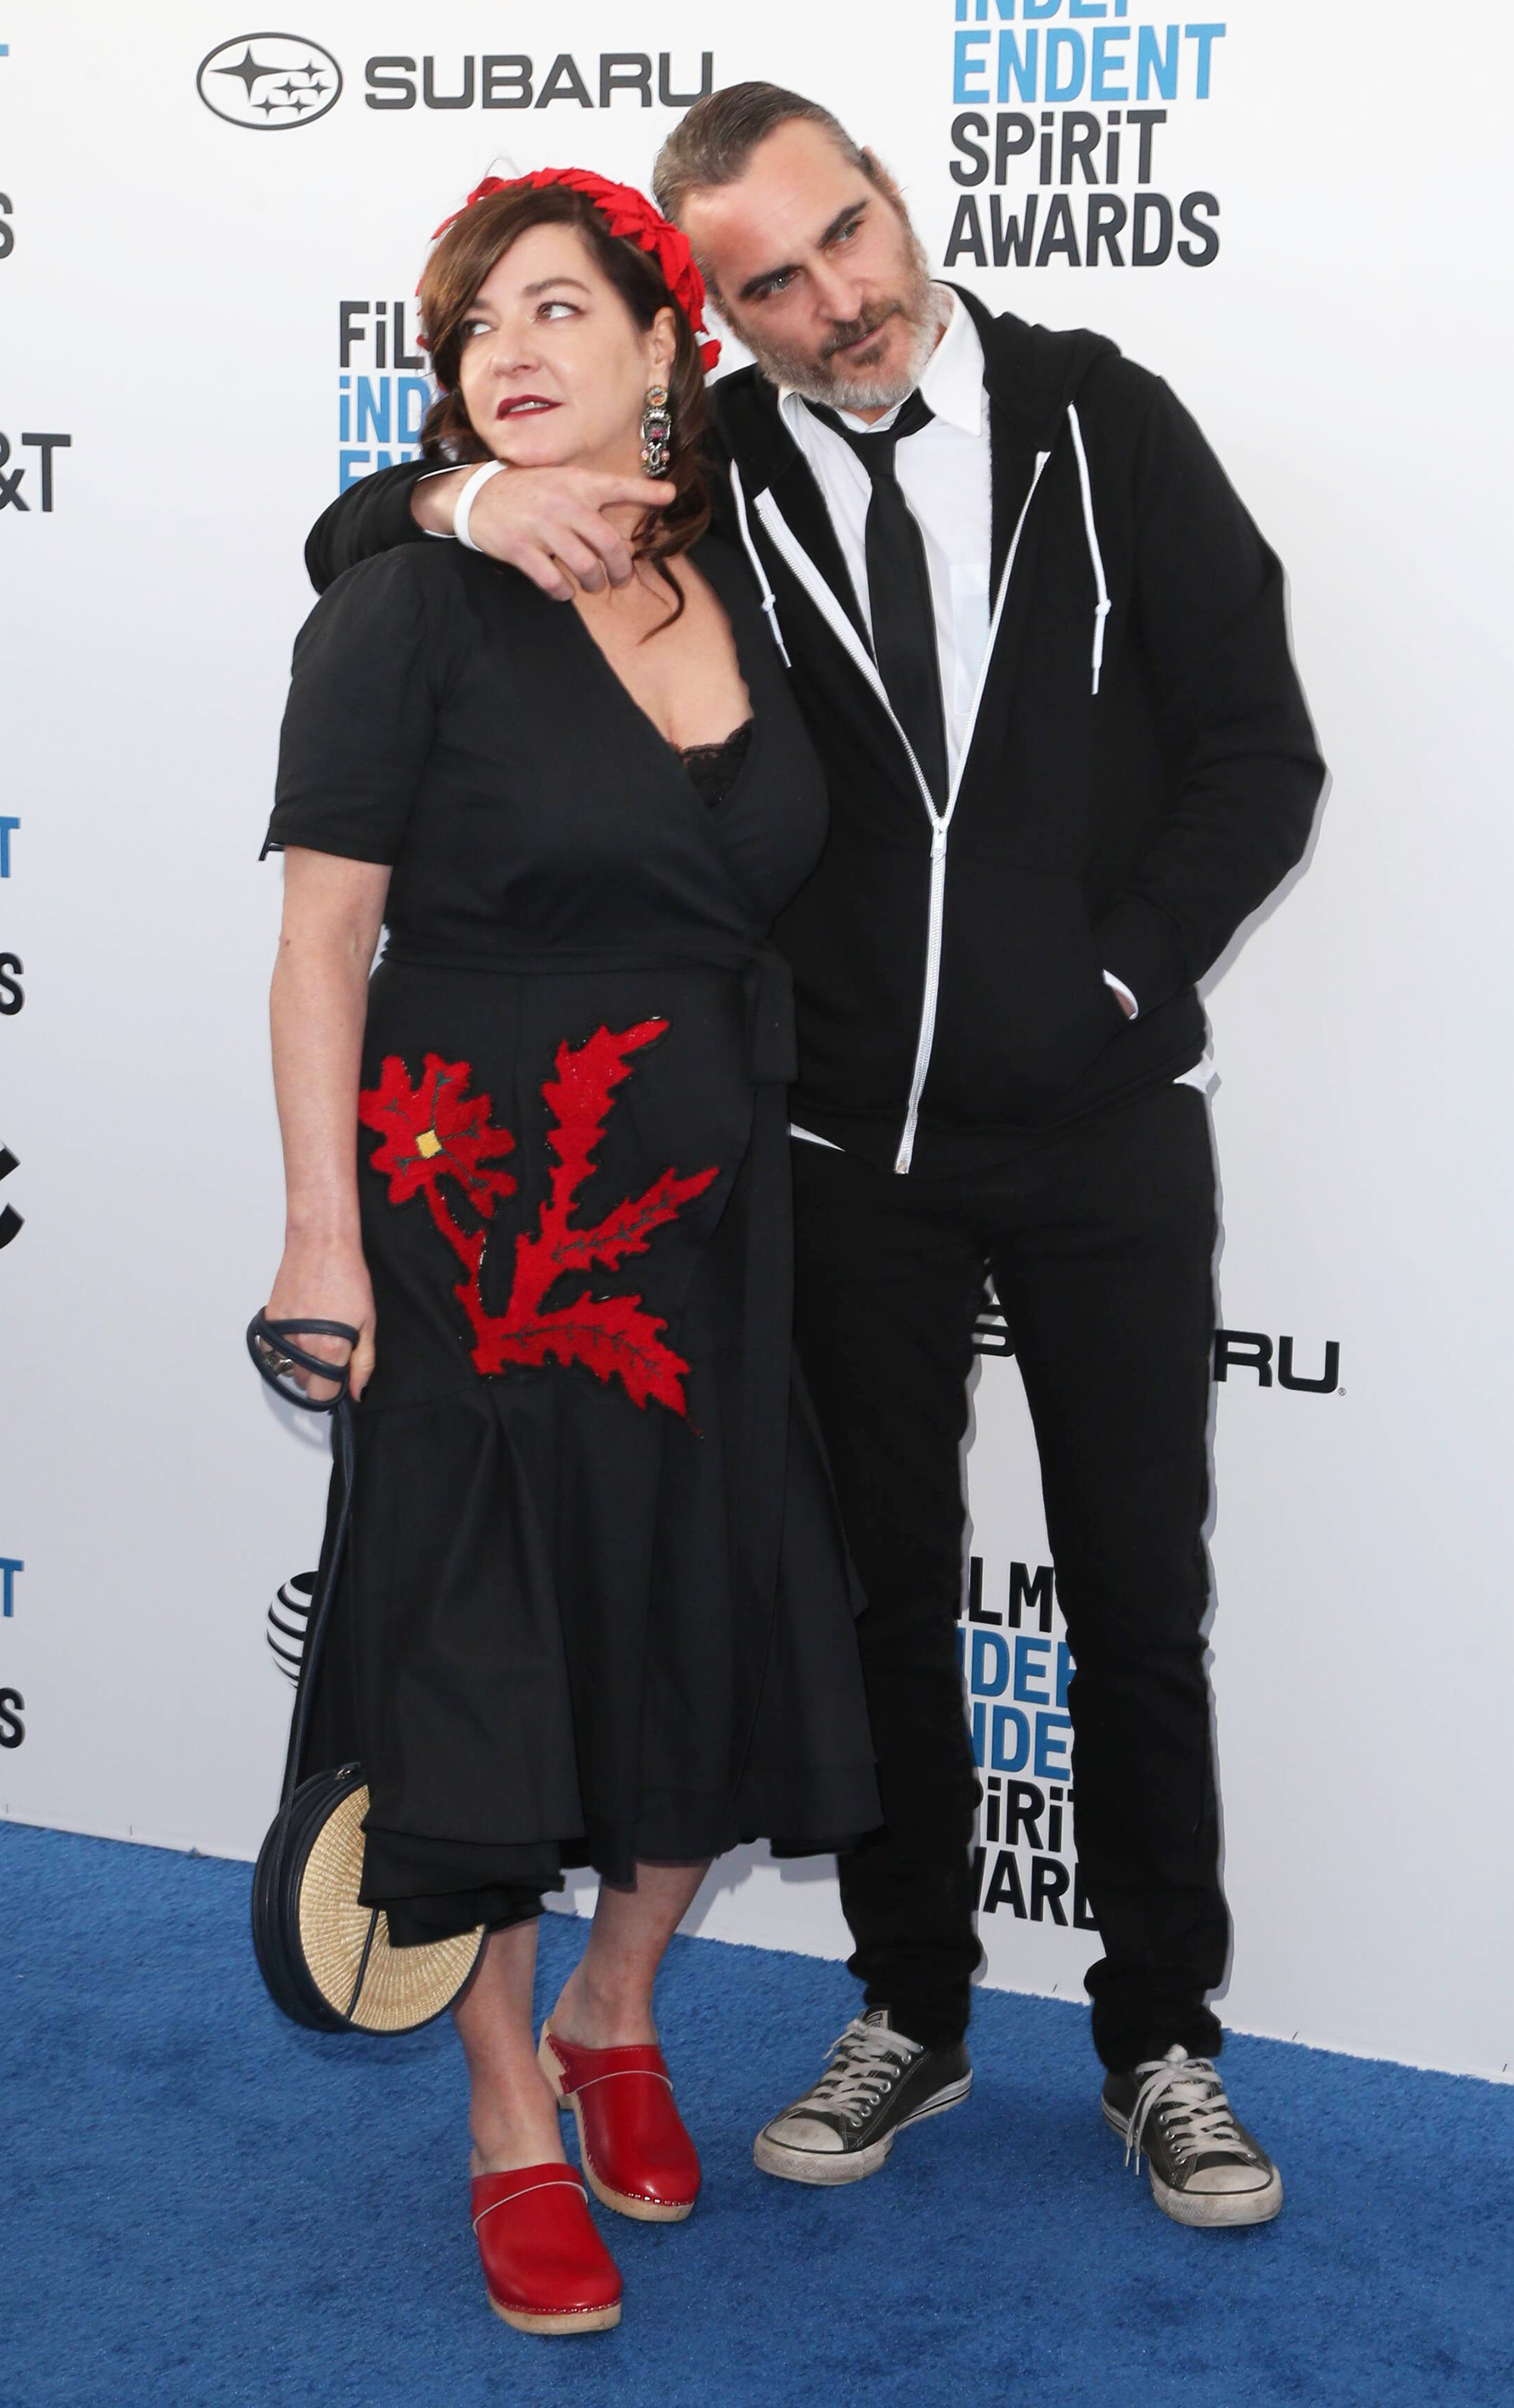 Entertainment Bilder Des Tages SANTA MONICA, CA - FEBRUARY 23: Lynne Ramsay, Joaquin Phoenix At The 2019 Film Independent Spirit Awards In Santa Monica, California On February 23, 2019. PUBLICATIONxINxGERxSUIxAUTxONLY